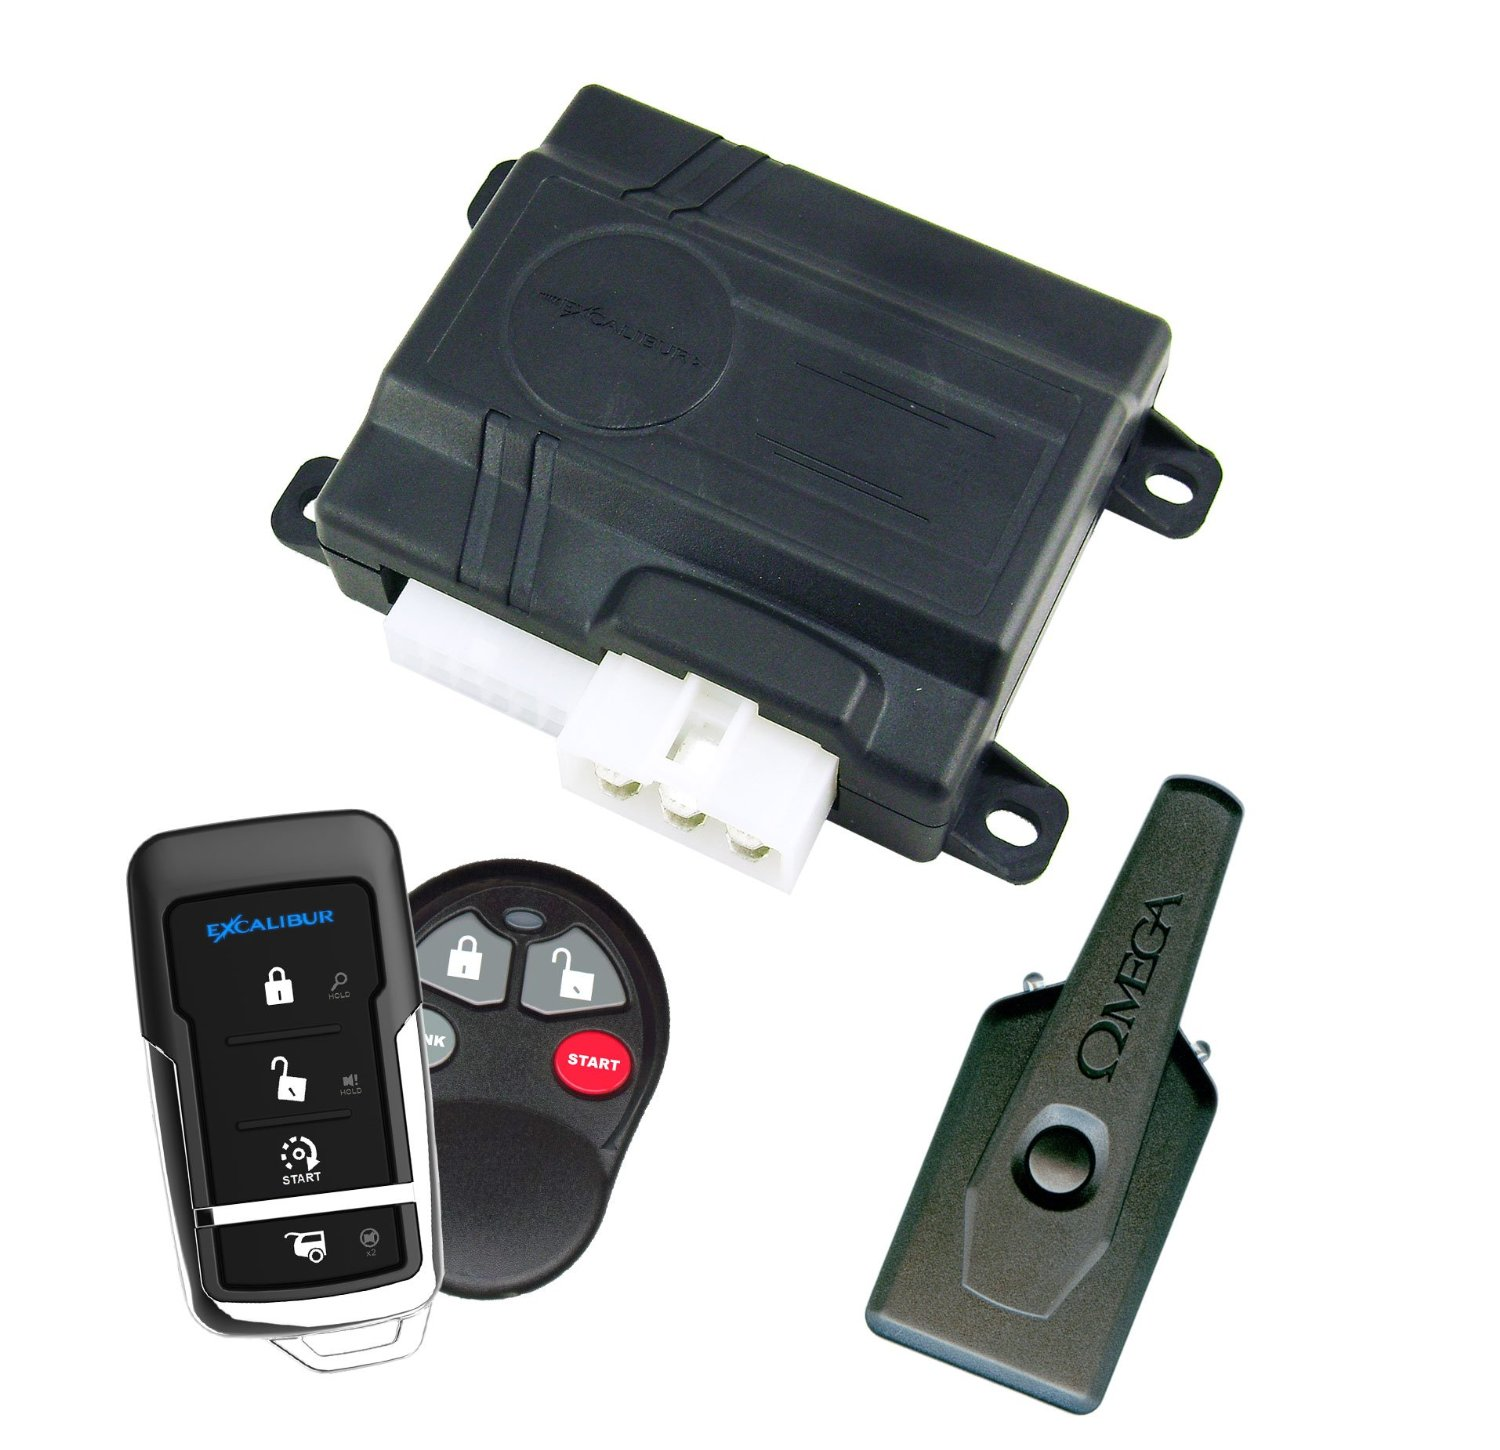 Excalibur Vehicle Remote Starters